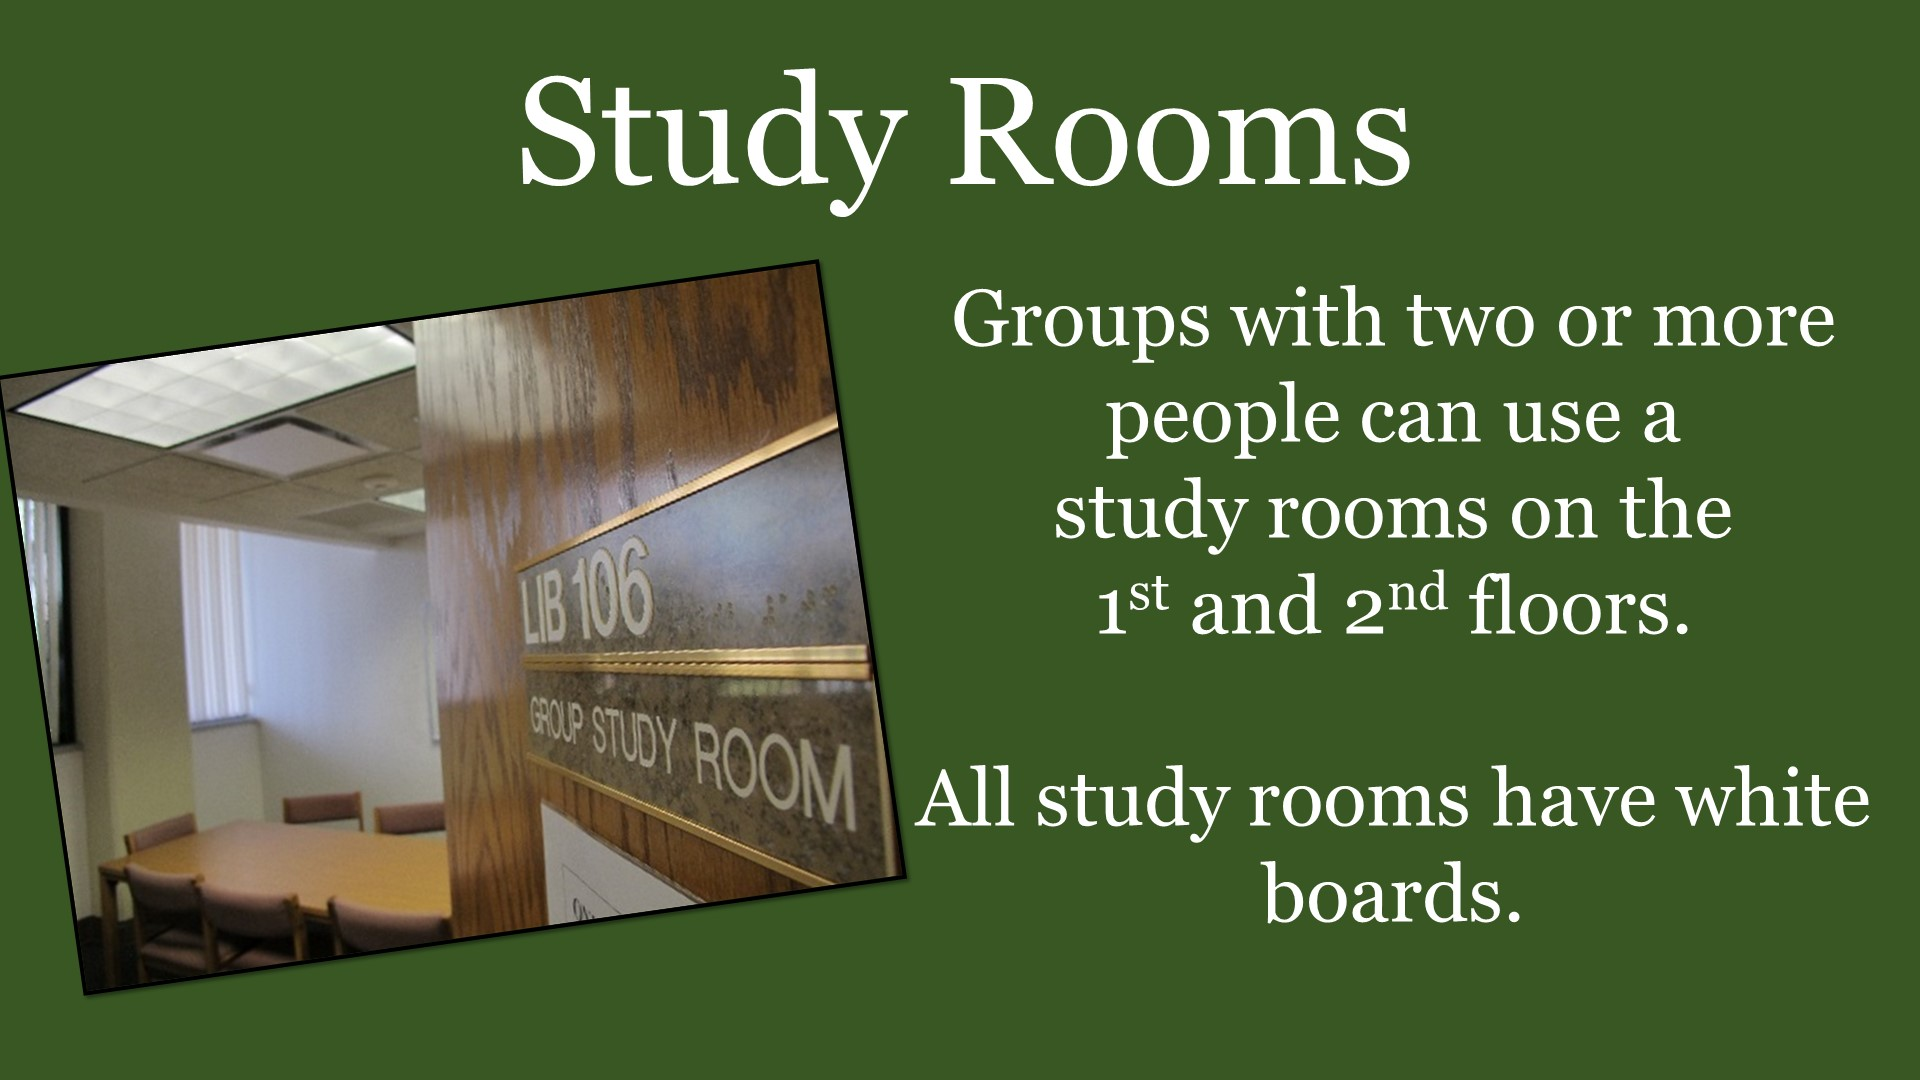 Promo for study rooms